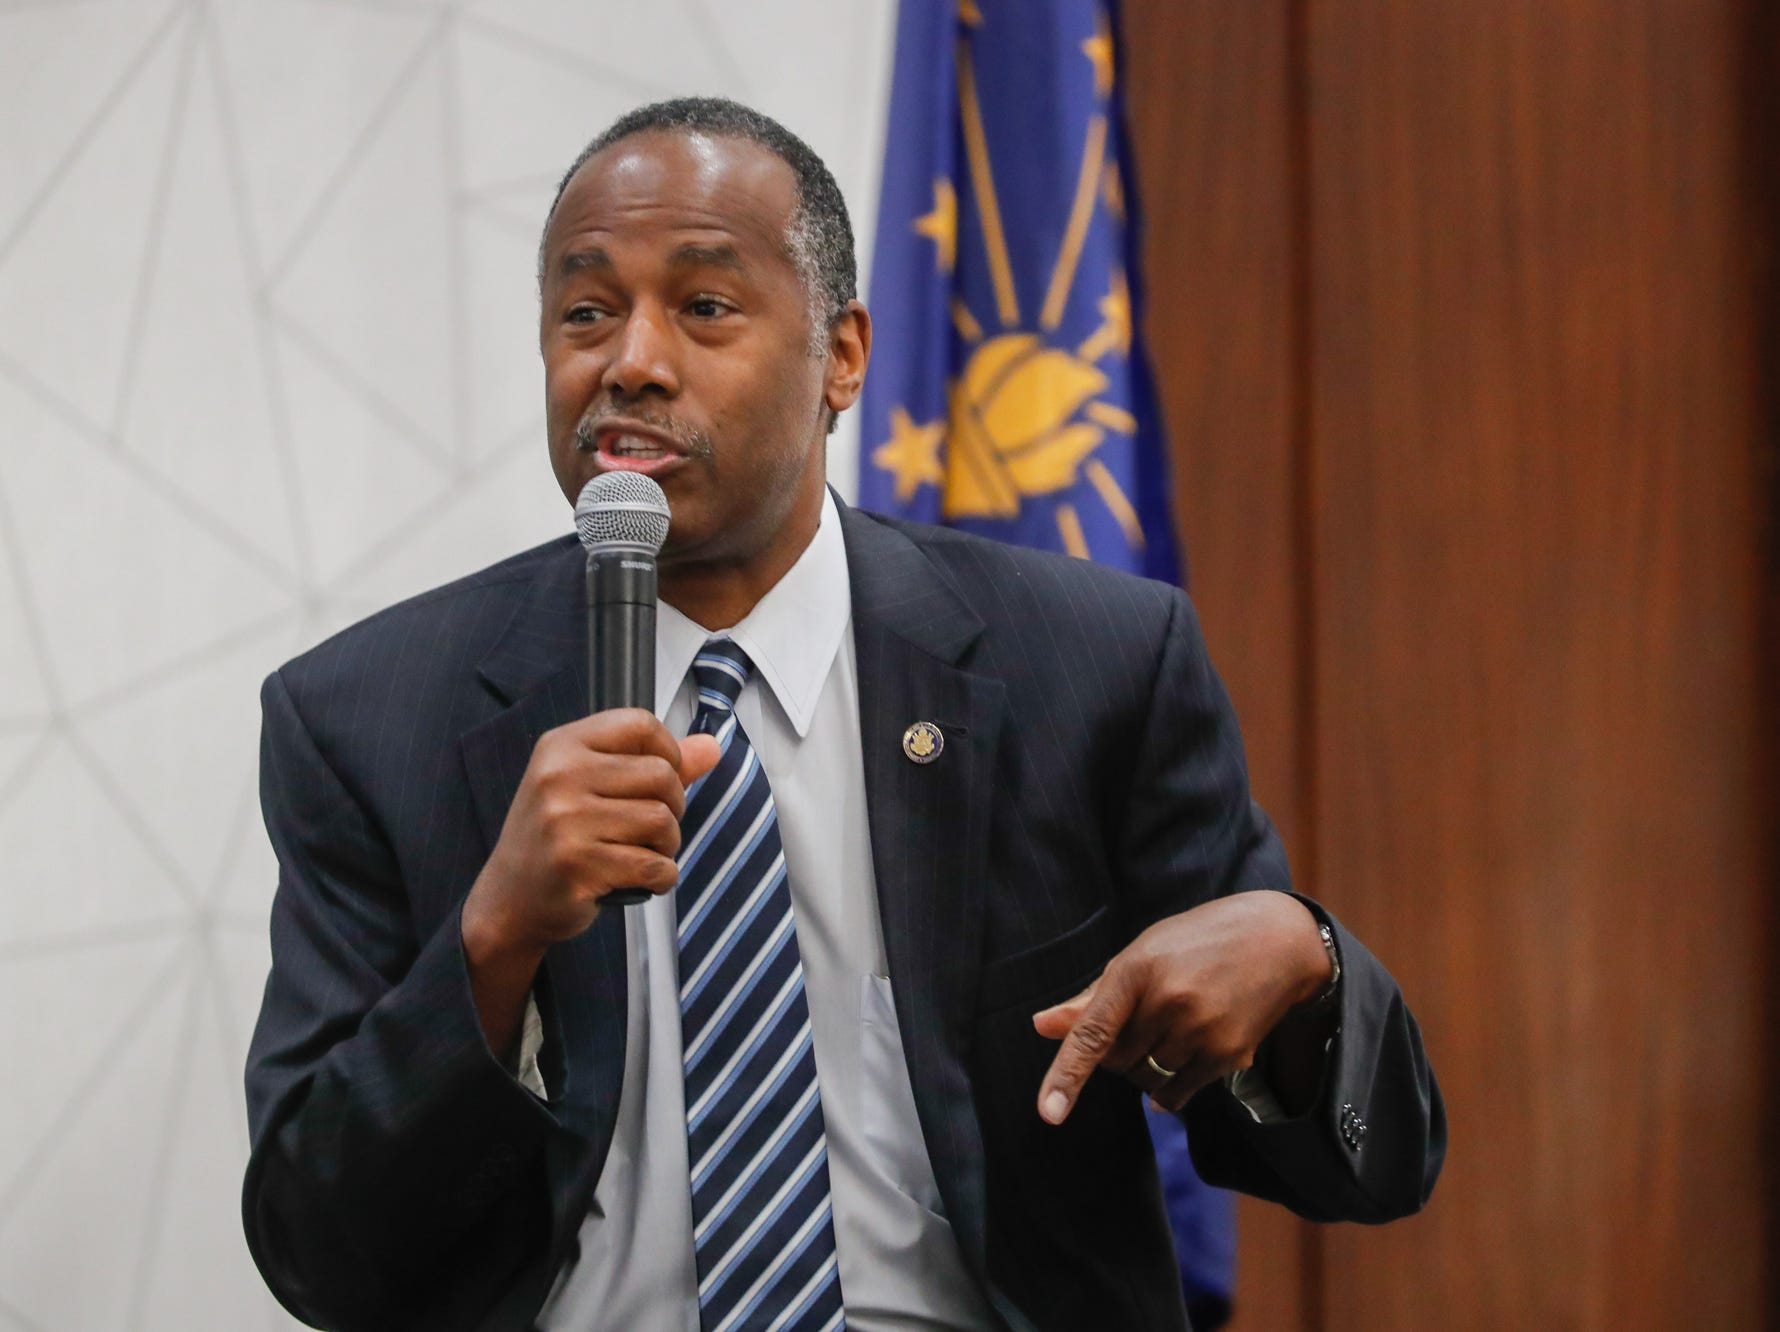 HUD Secretary Ben Carson takes submitted questions after his Keynote speech during the Indiana Civil Rights Commission's Fair Housing Law and Policy Conference, held at the     Sheraton Indianapolis City Centre Hotel on Wednesday, Oct. 10, 2018.